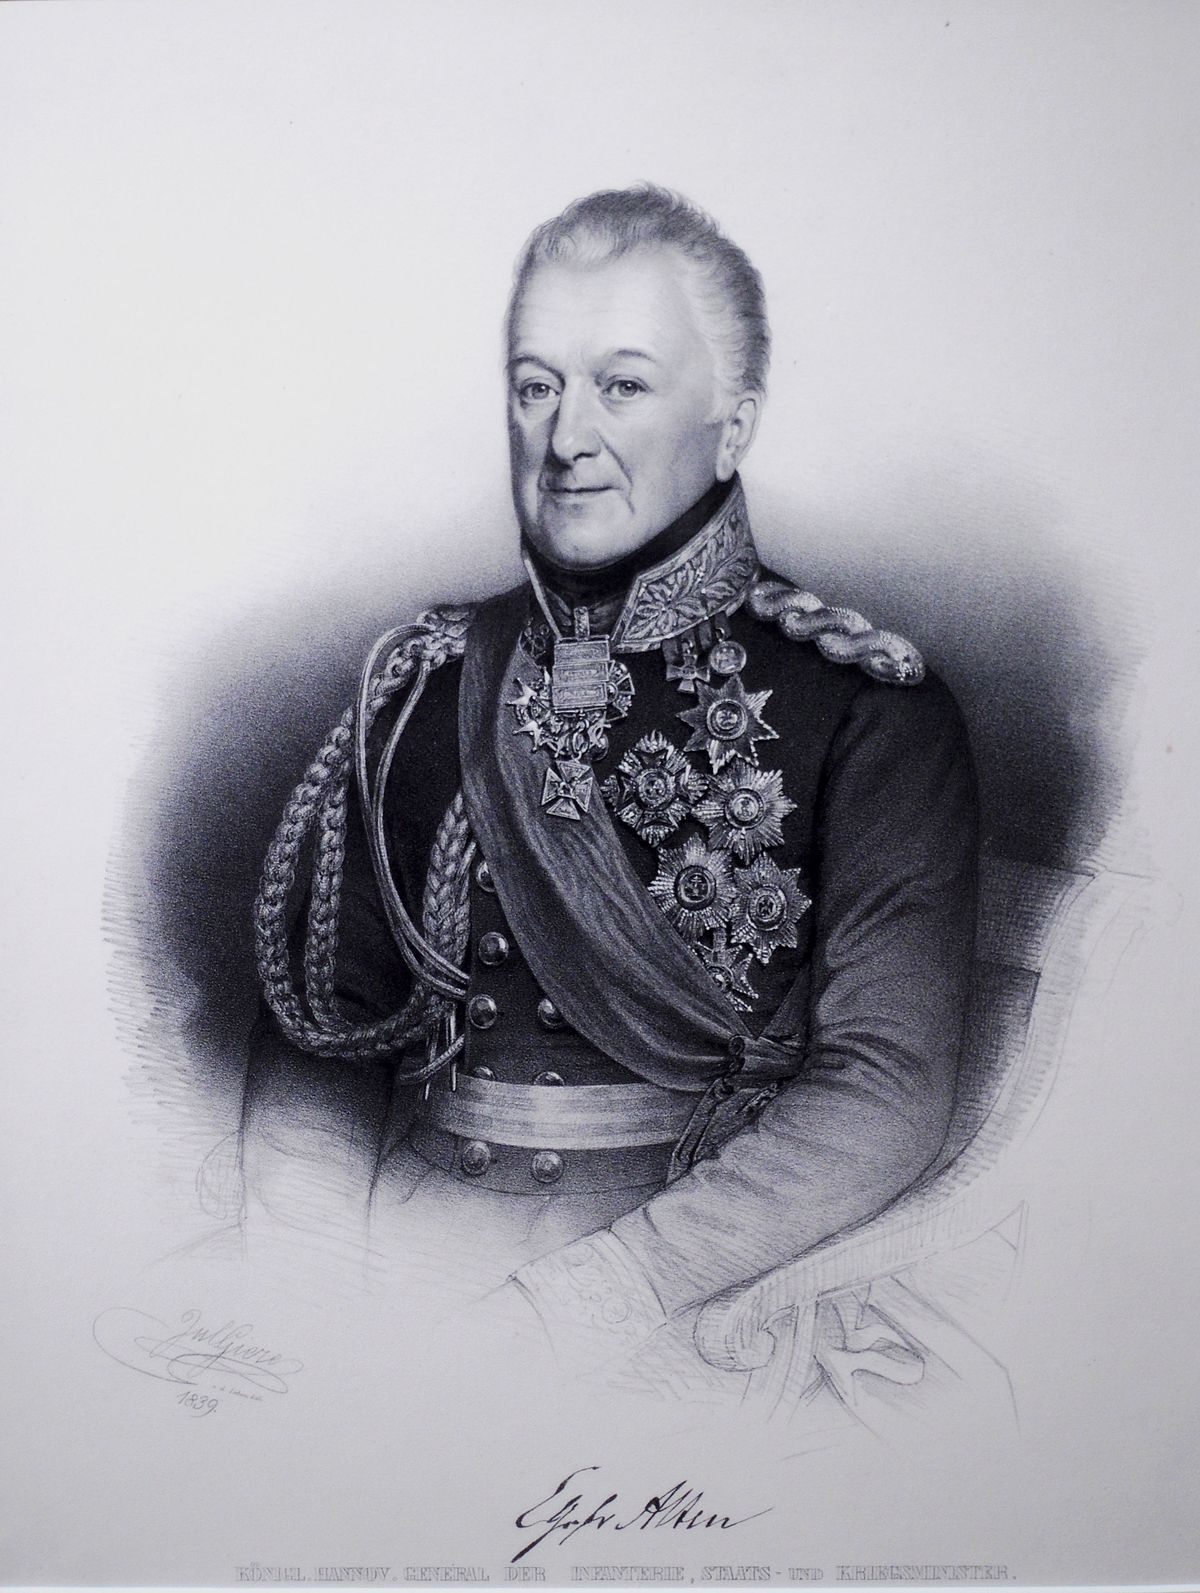 charles count alten wikipedia